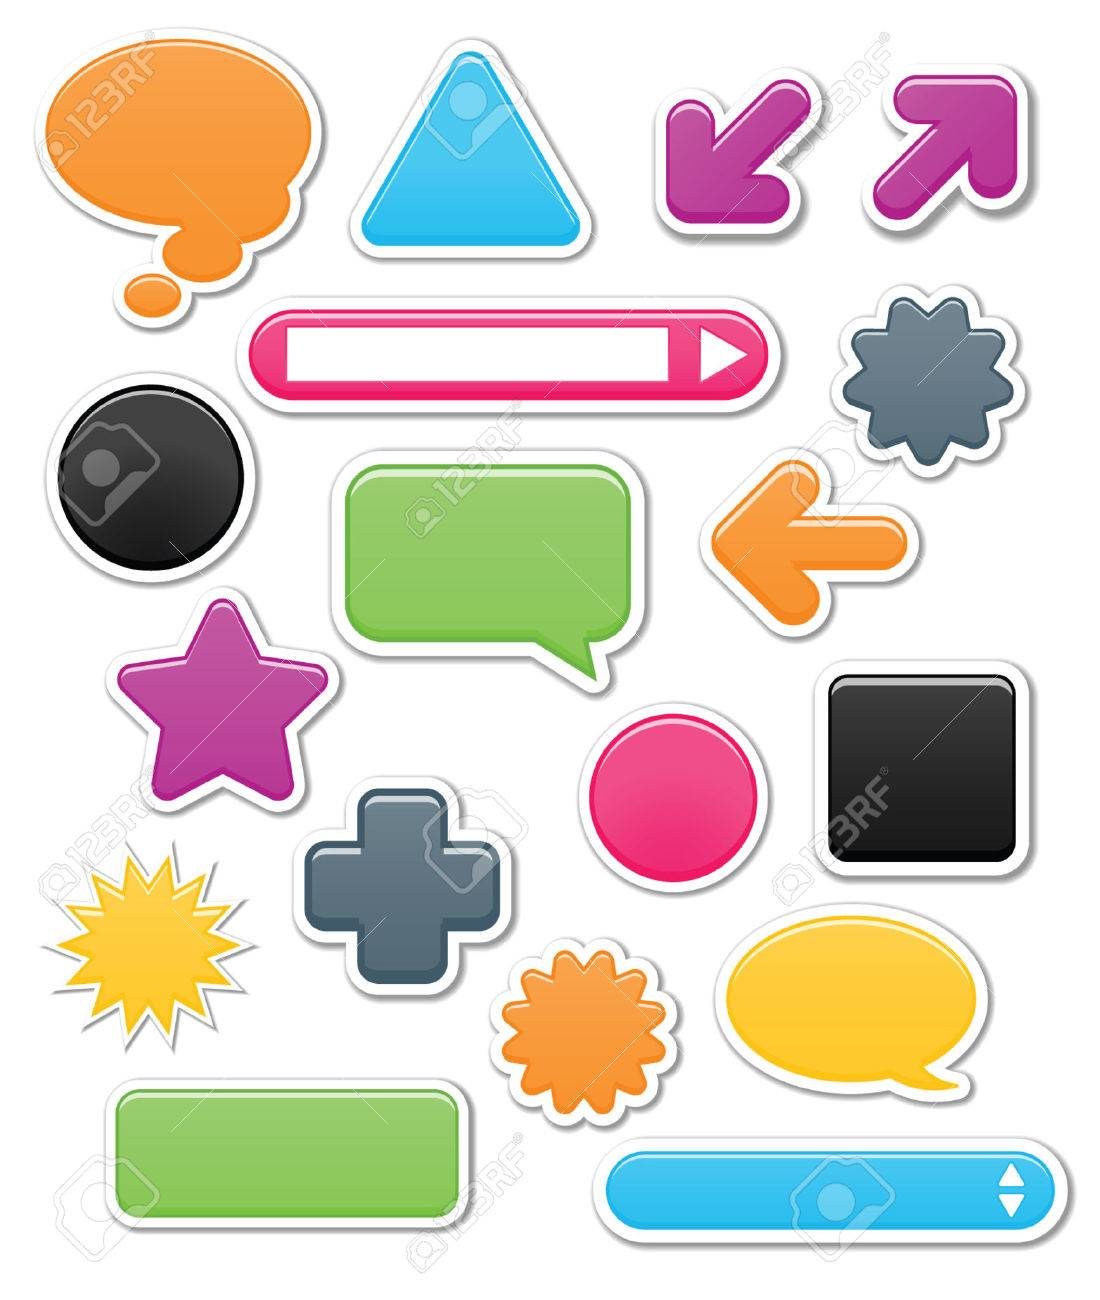 Collection of brightly colored, smooth web elements including: arrows, search bars, speech and thought bubbles. Perfect for adding your own text or icons; vector file contains blends Stock Vector - 4885964